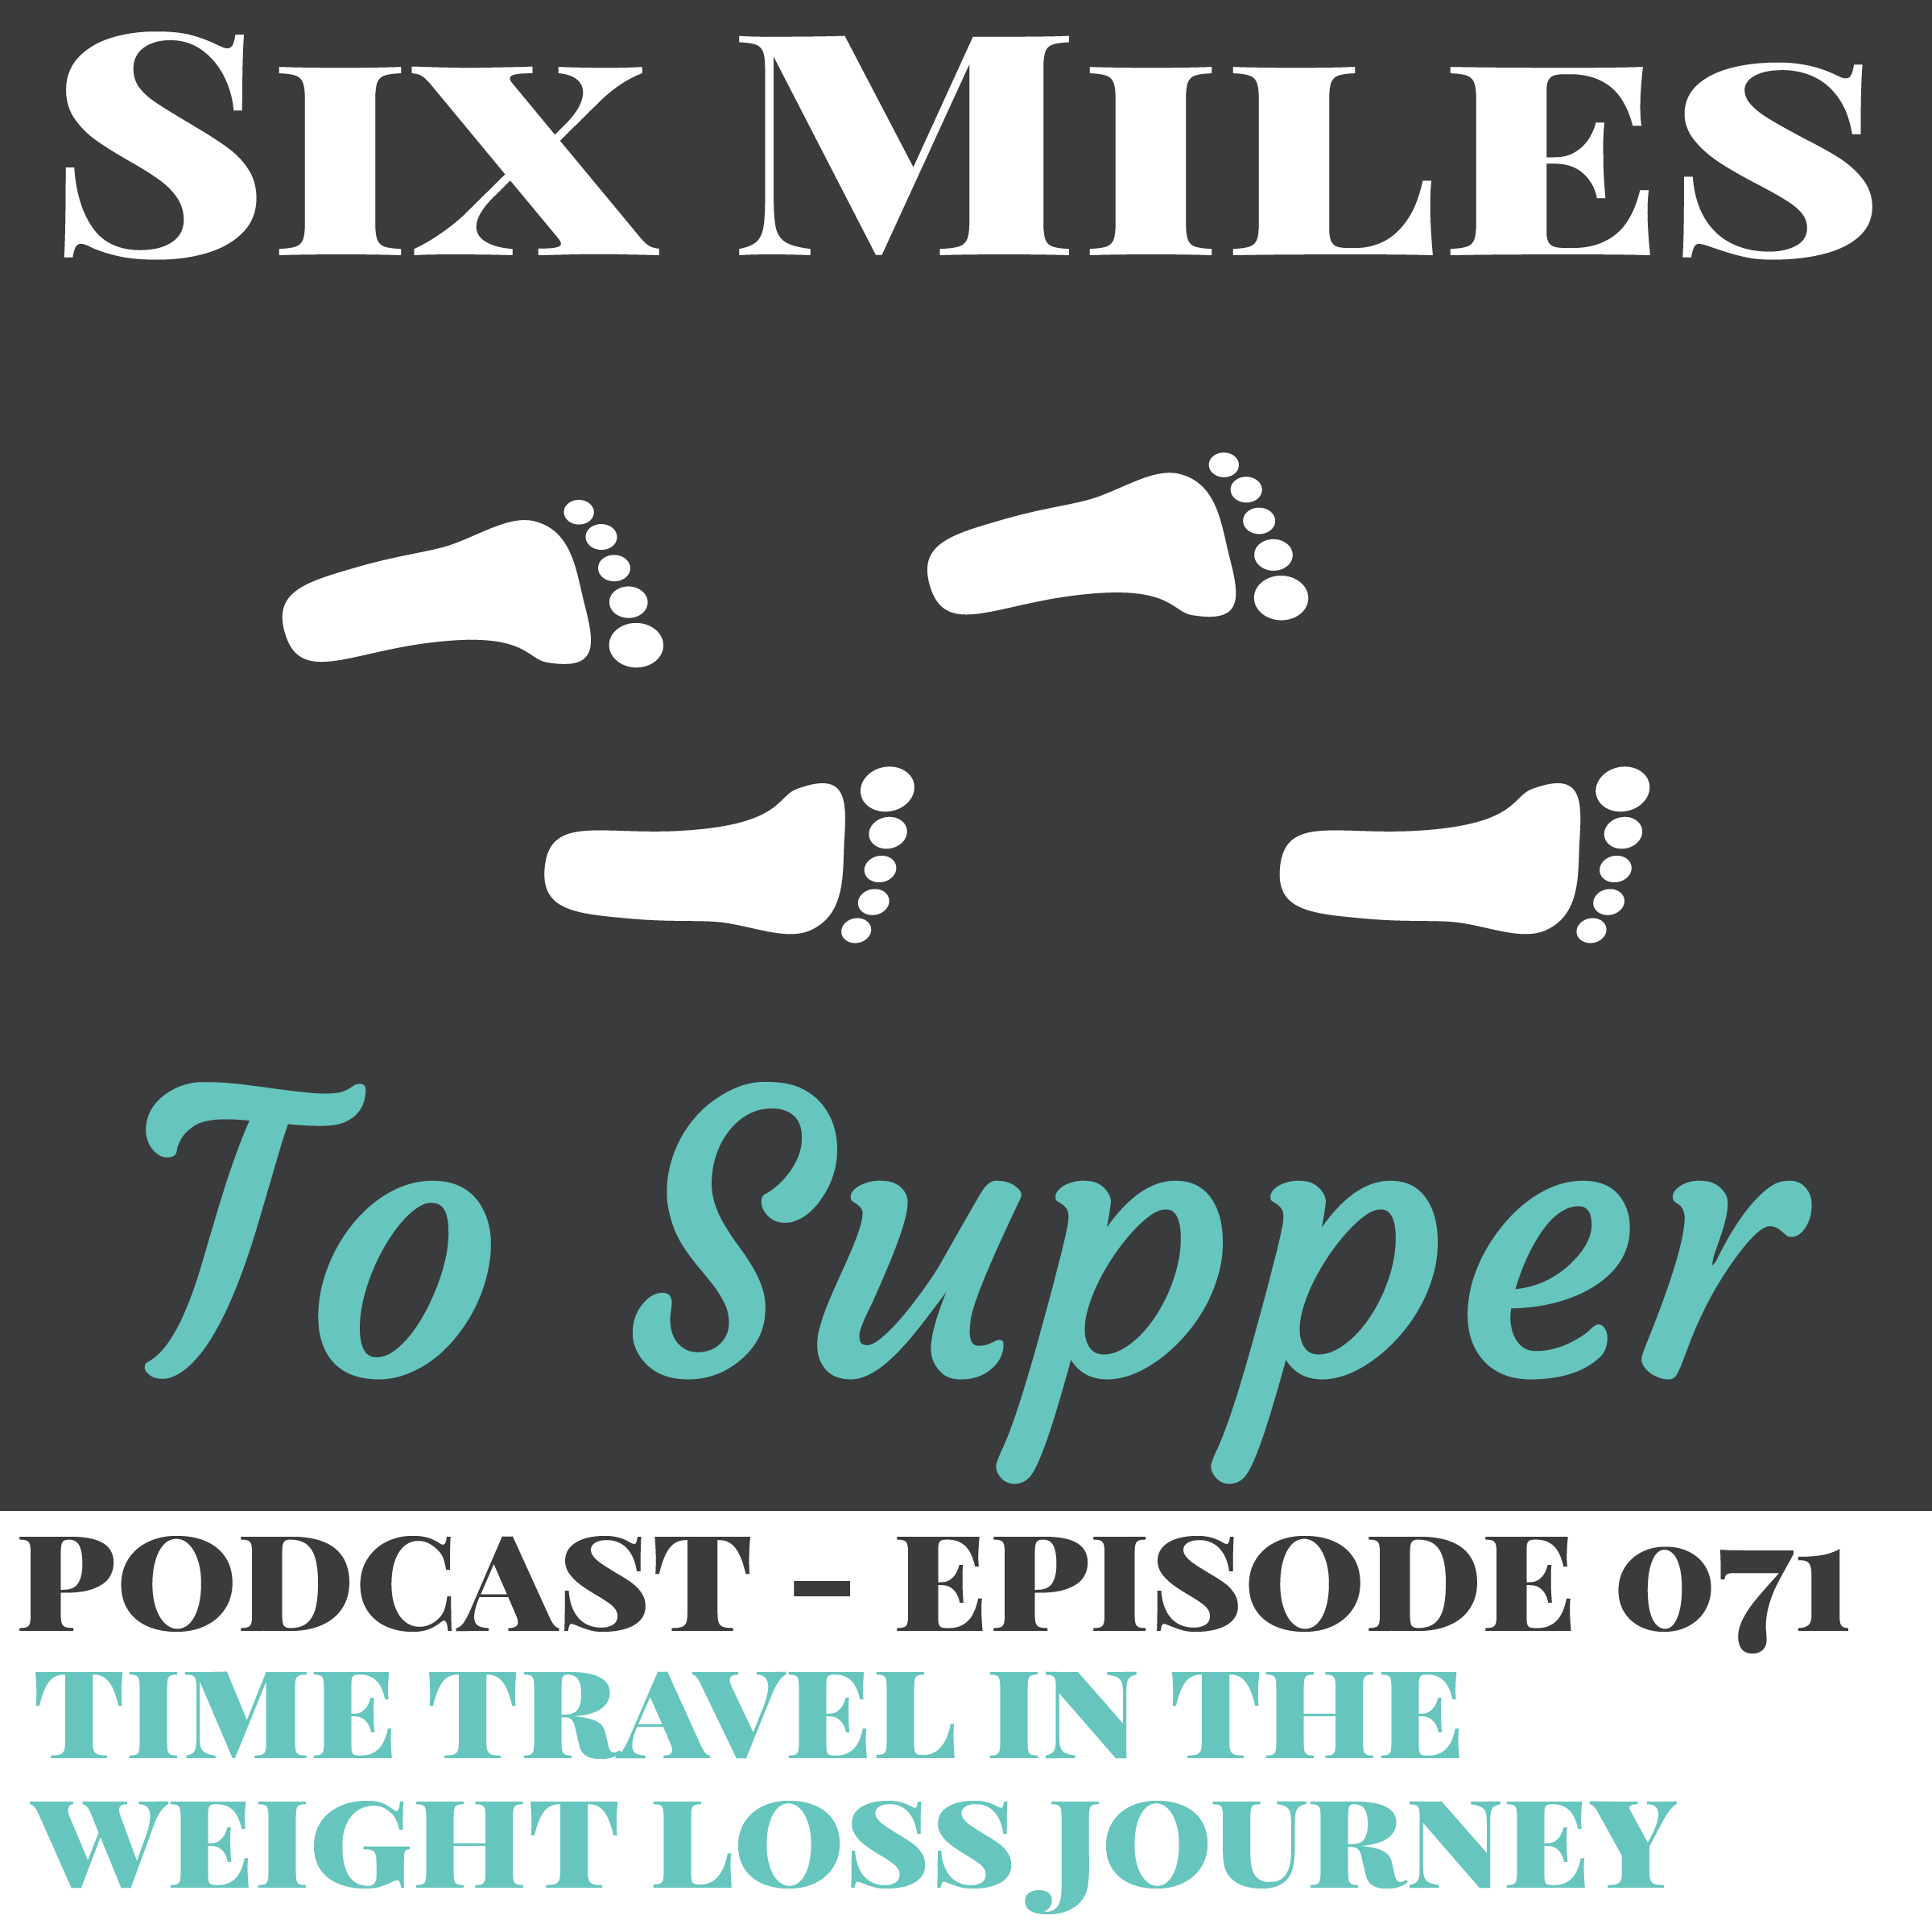 SMTS 071: Time Traveling In The Weight Loss Journey